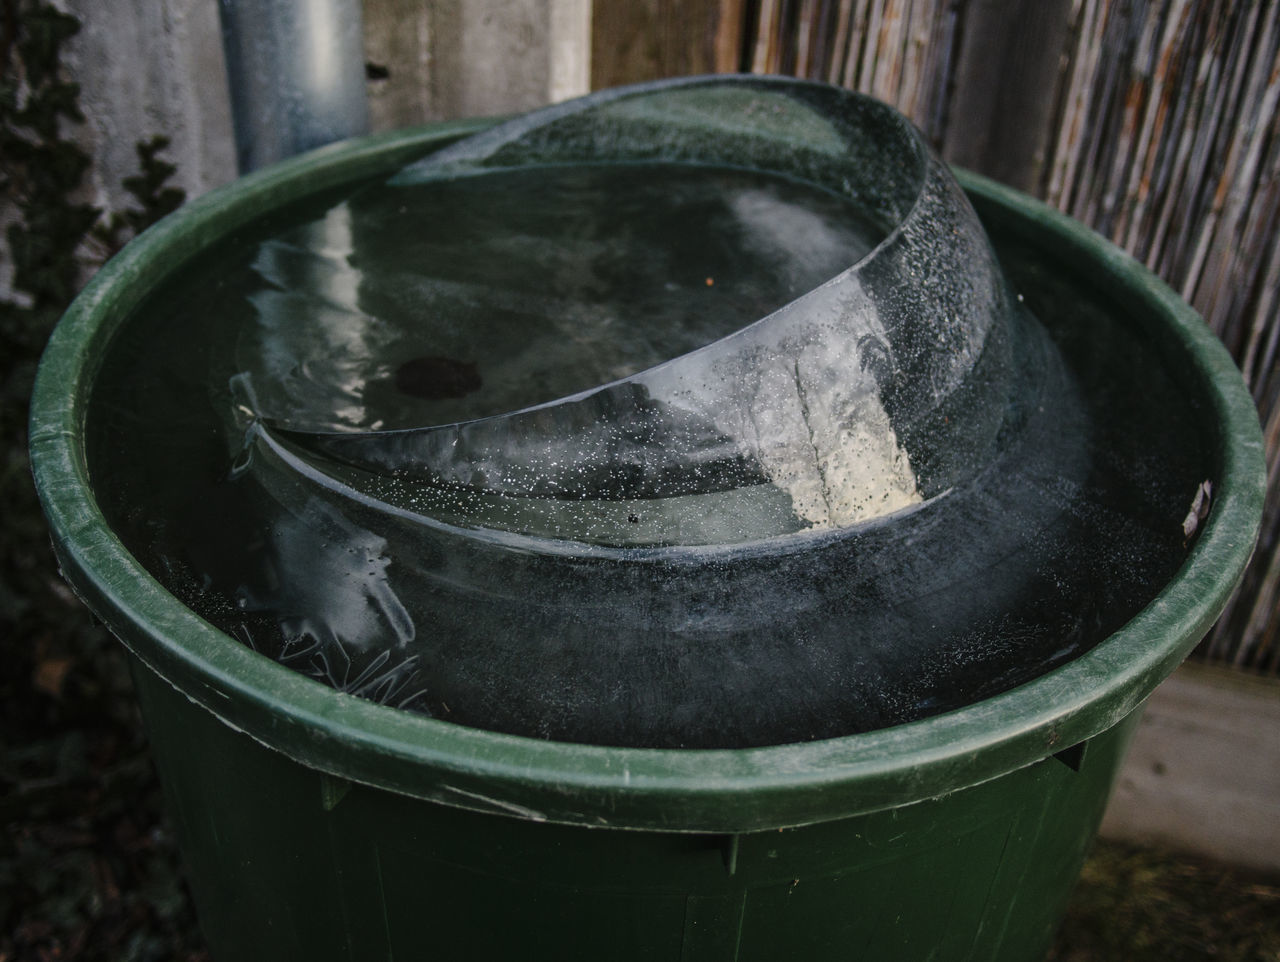 close-up, metal, container, no people, focus on foreground, bucket, still life, indoors, nature, old, abandoned, day, high angle view, water, wood - material, cylinder, plant, barrel, single object